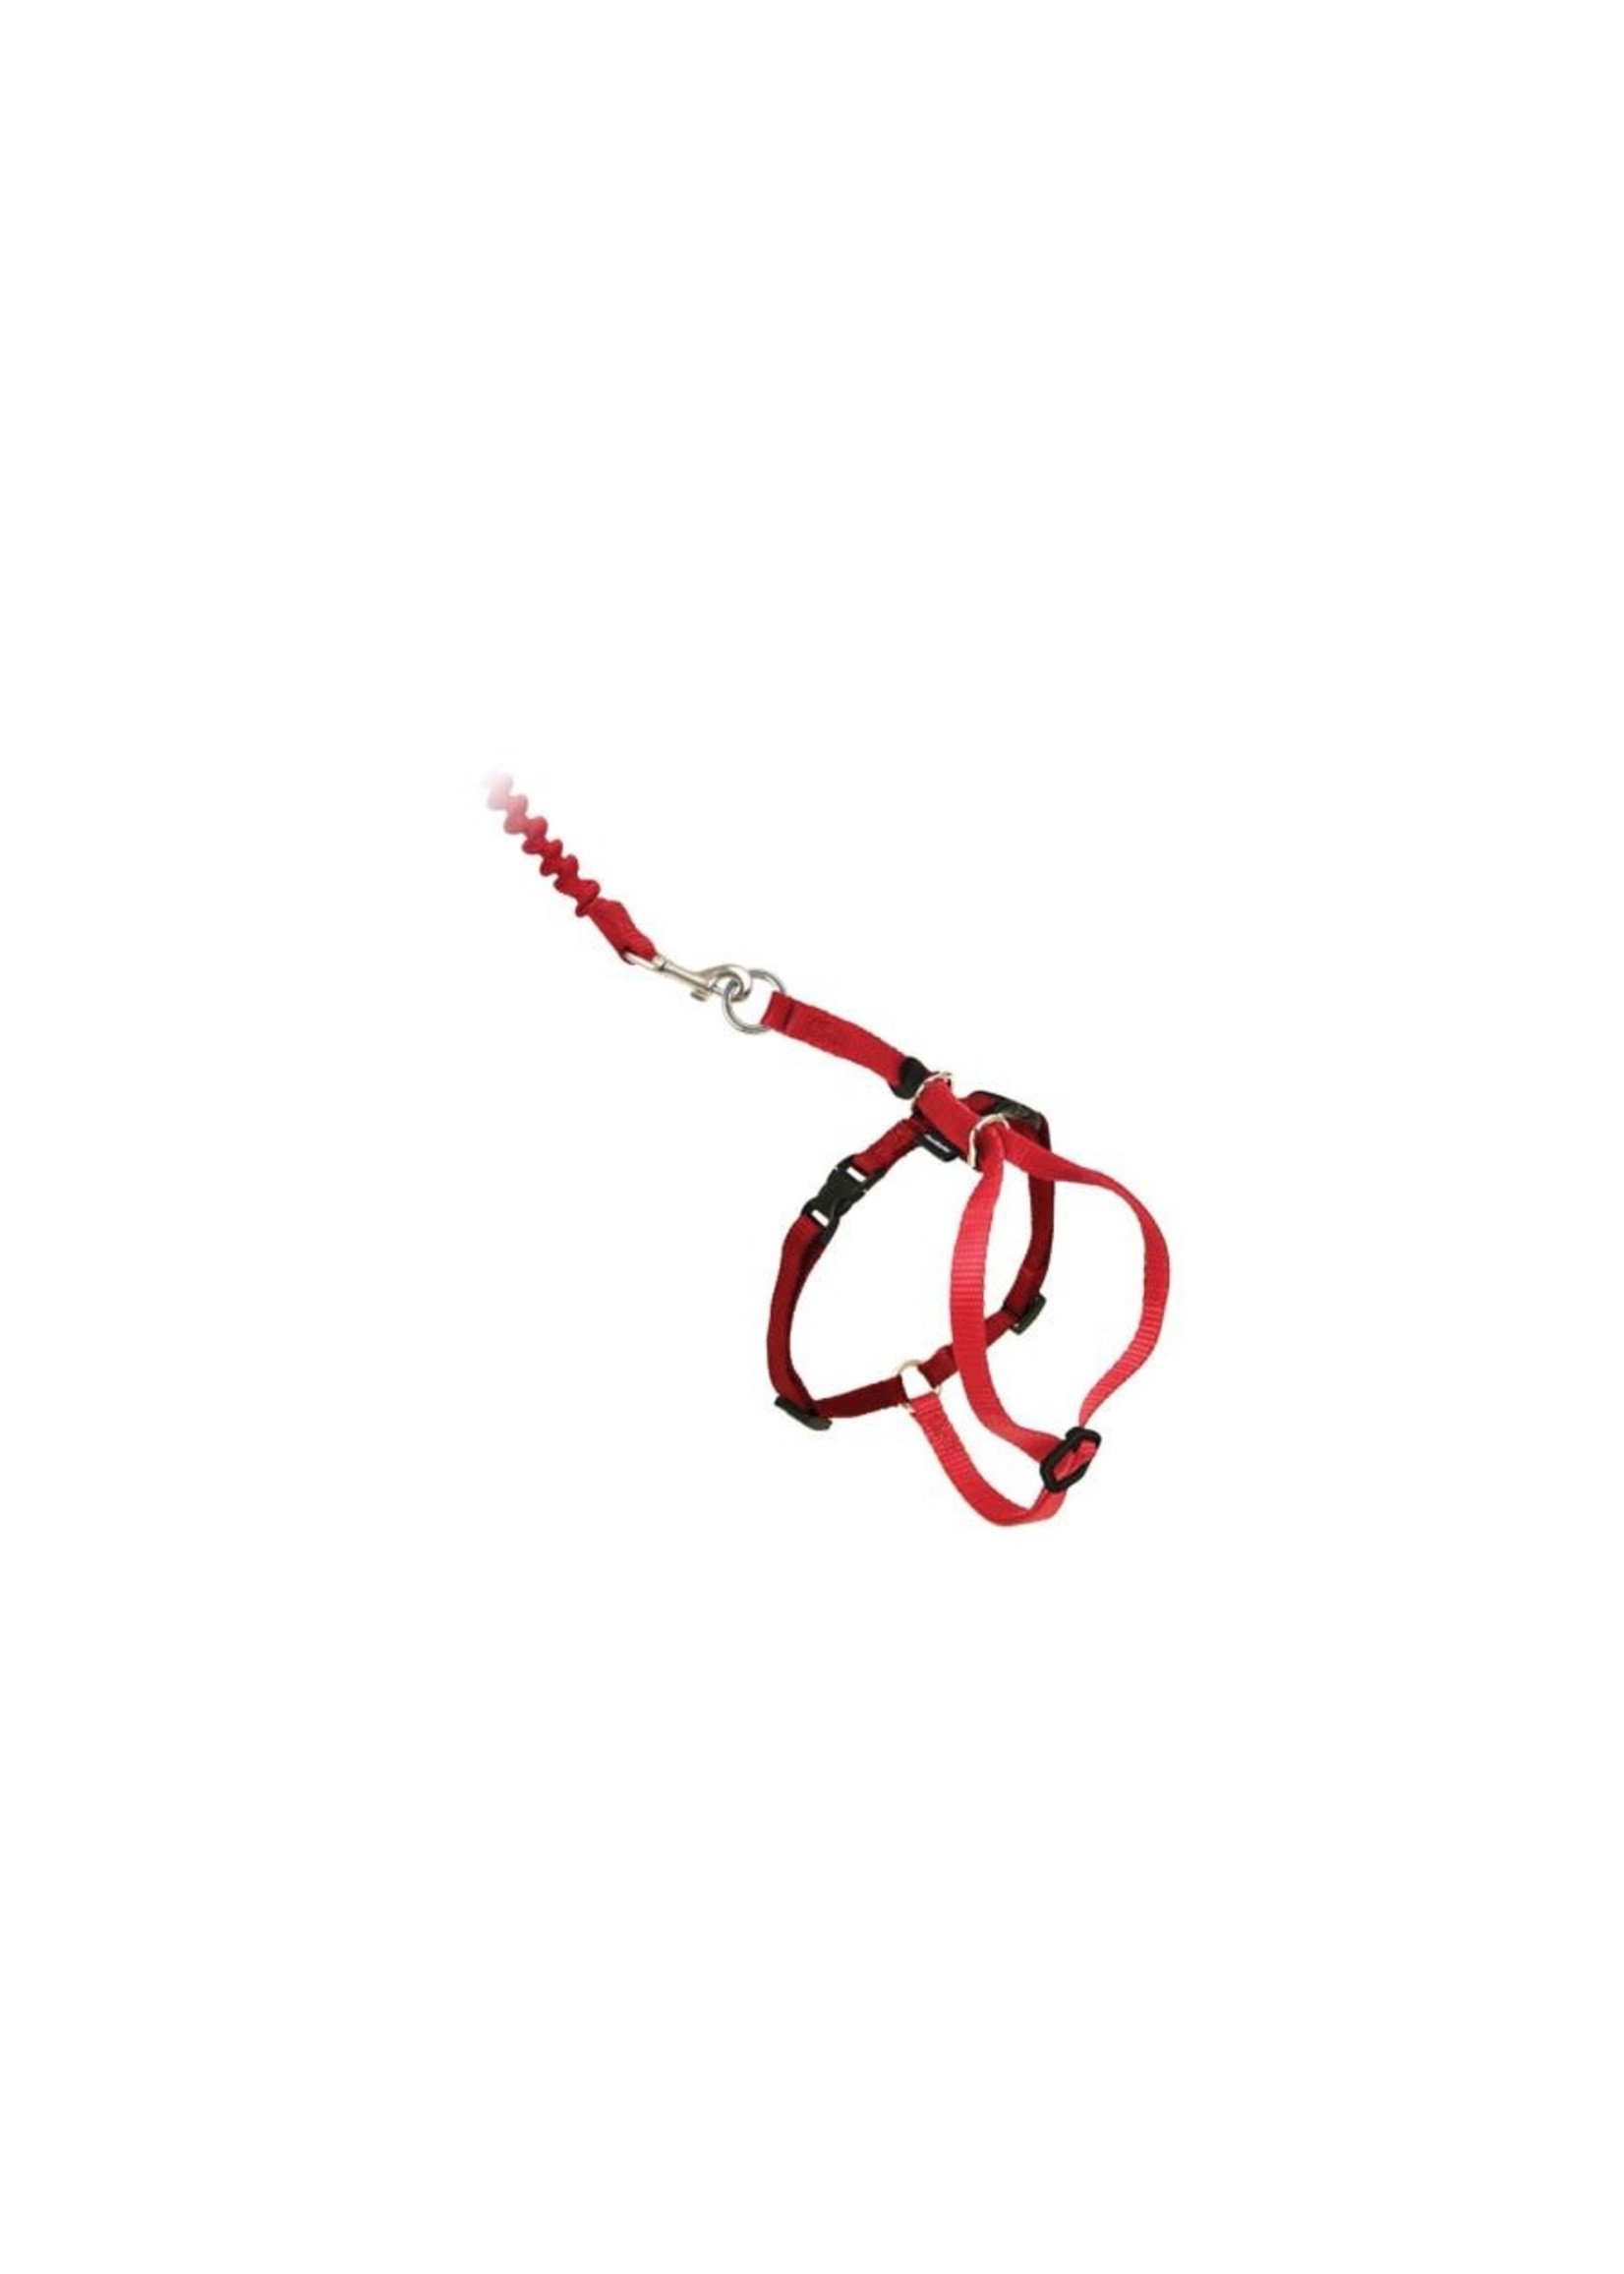 Petsafe Petsafe Côme with me Kitty harnais et laisse bungee pour chat grand rouge